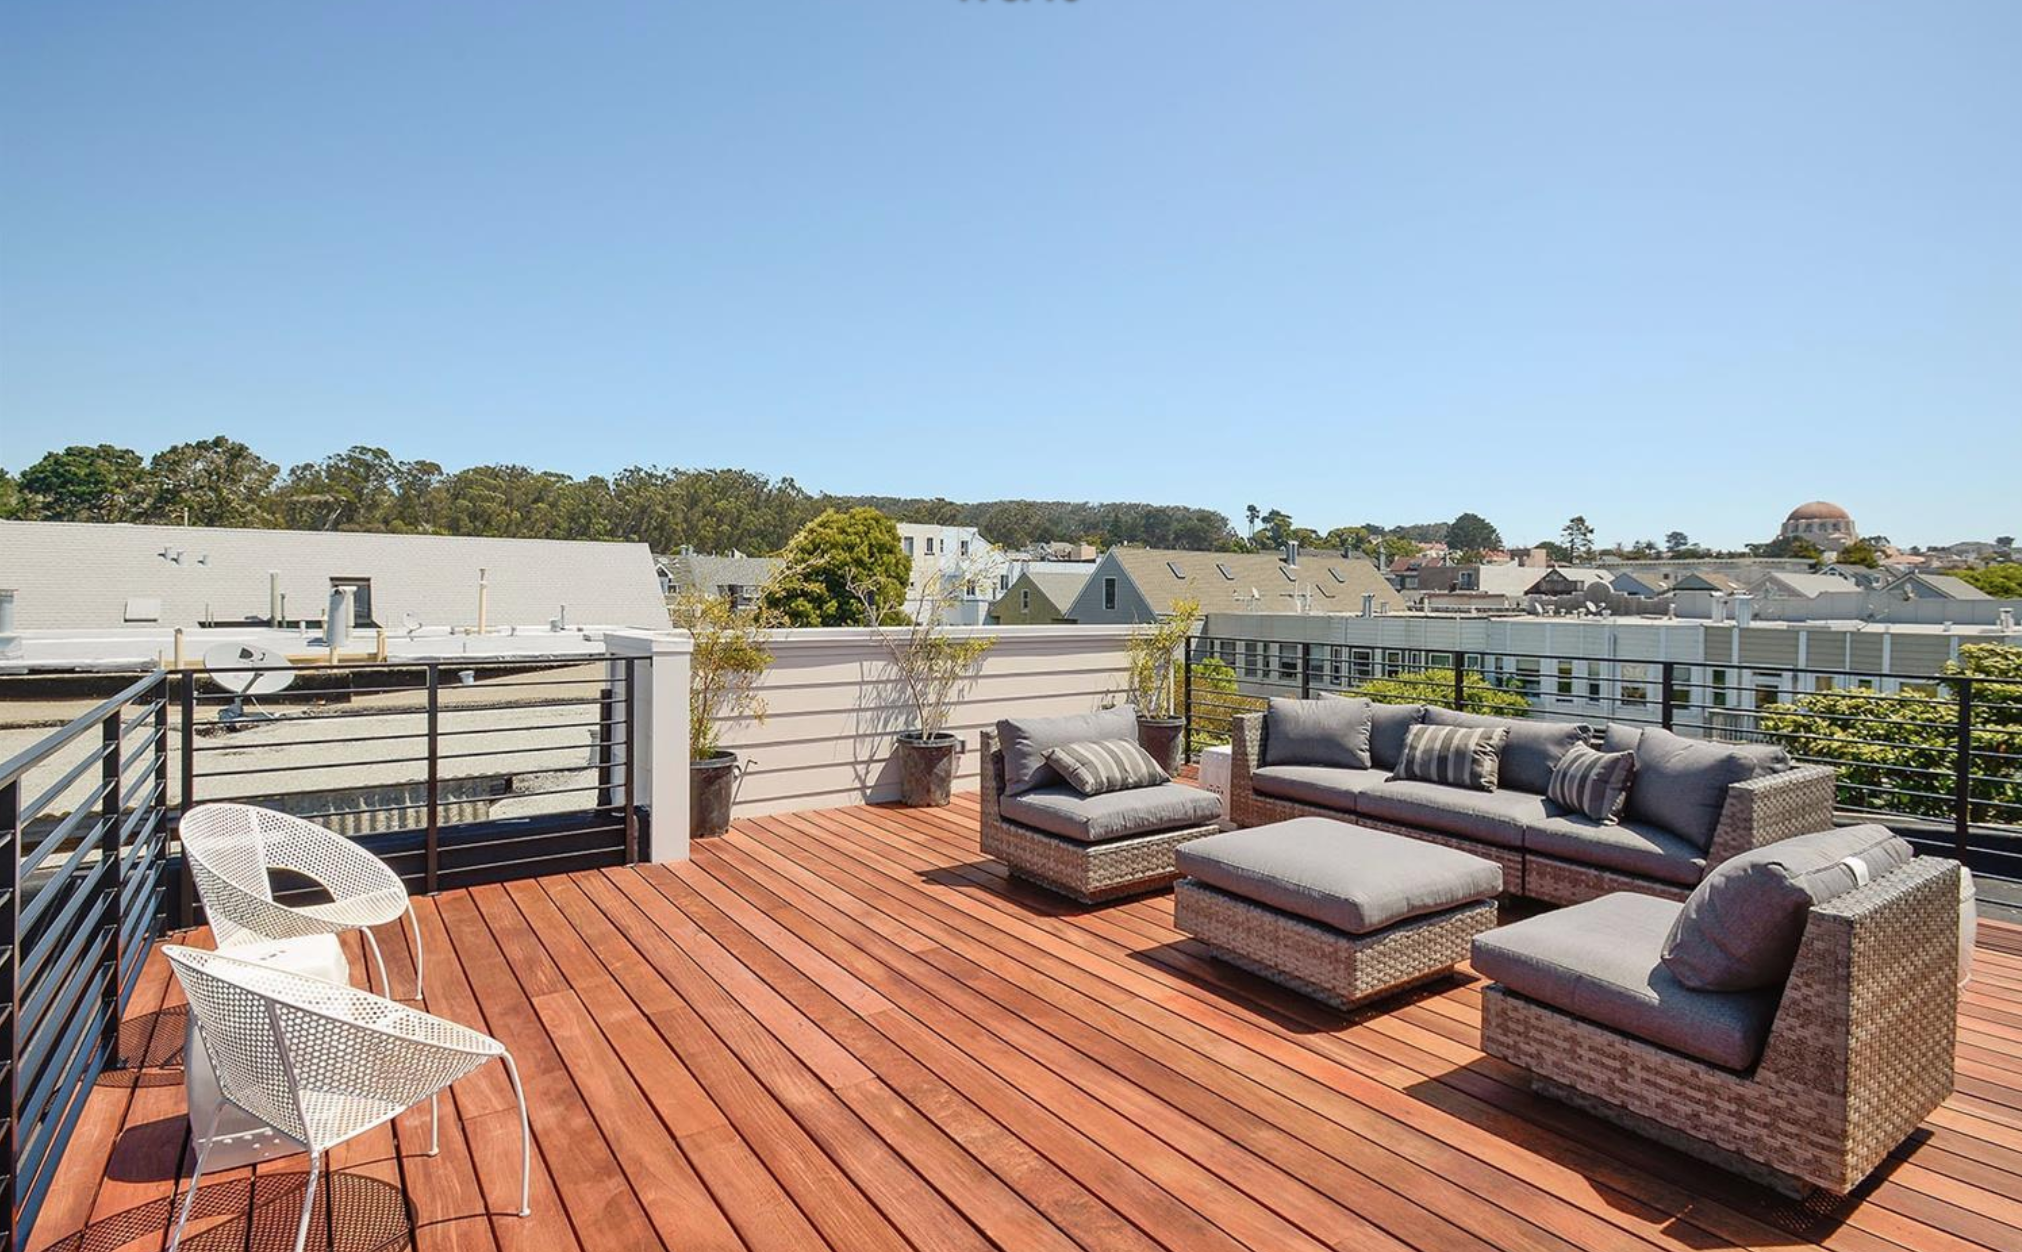 138-140 8th Avenue - Rooftop deck